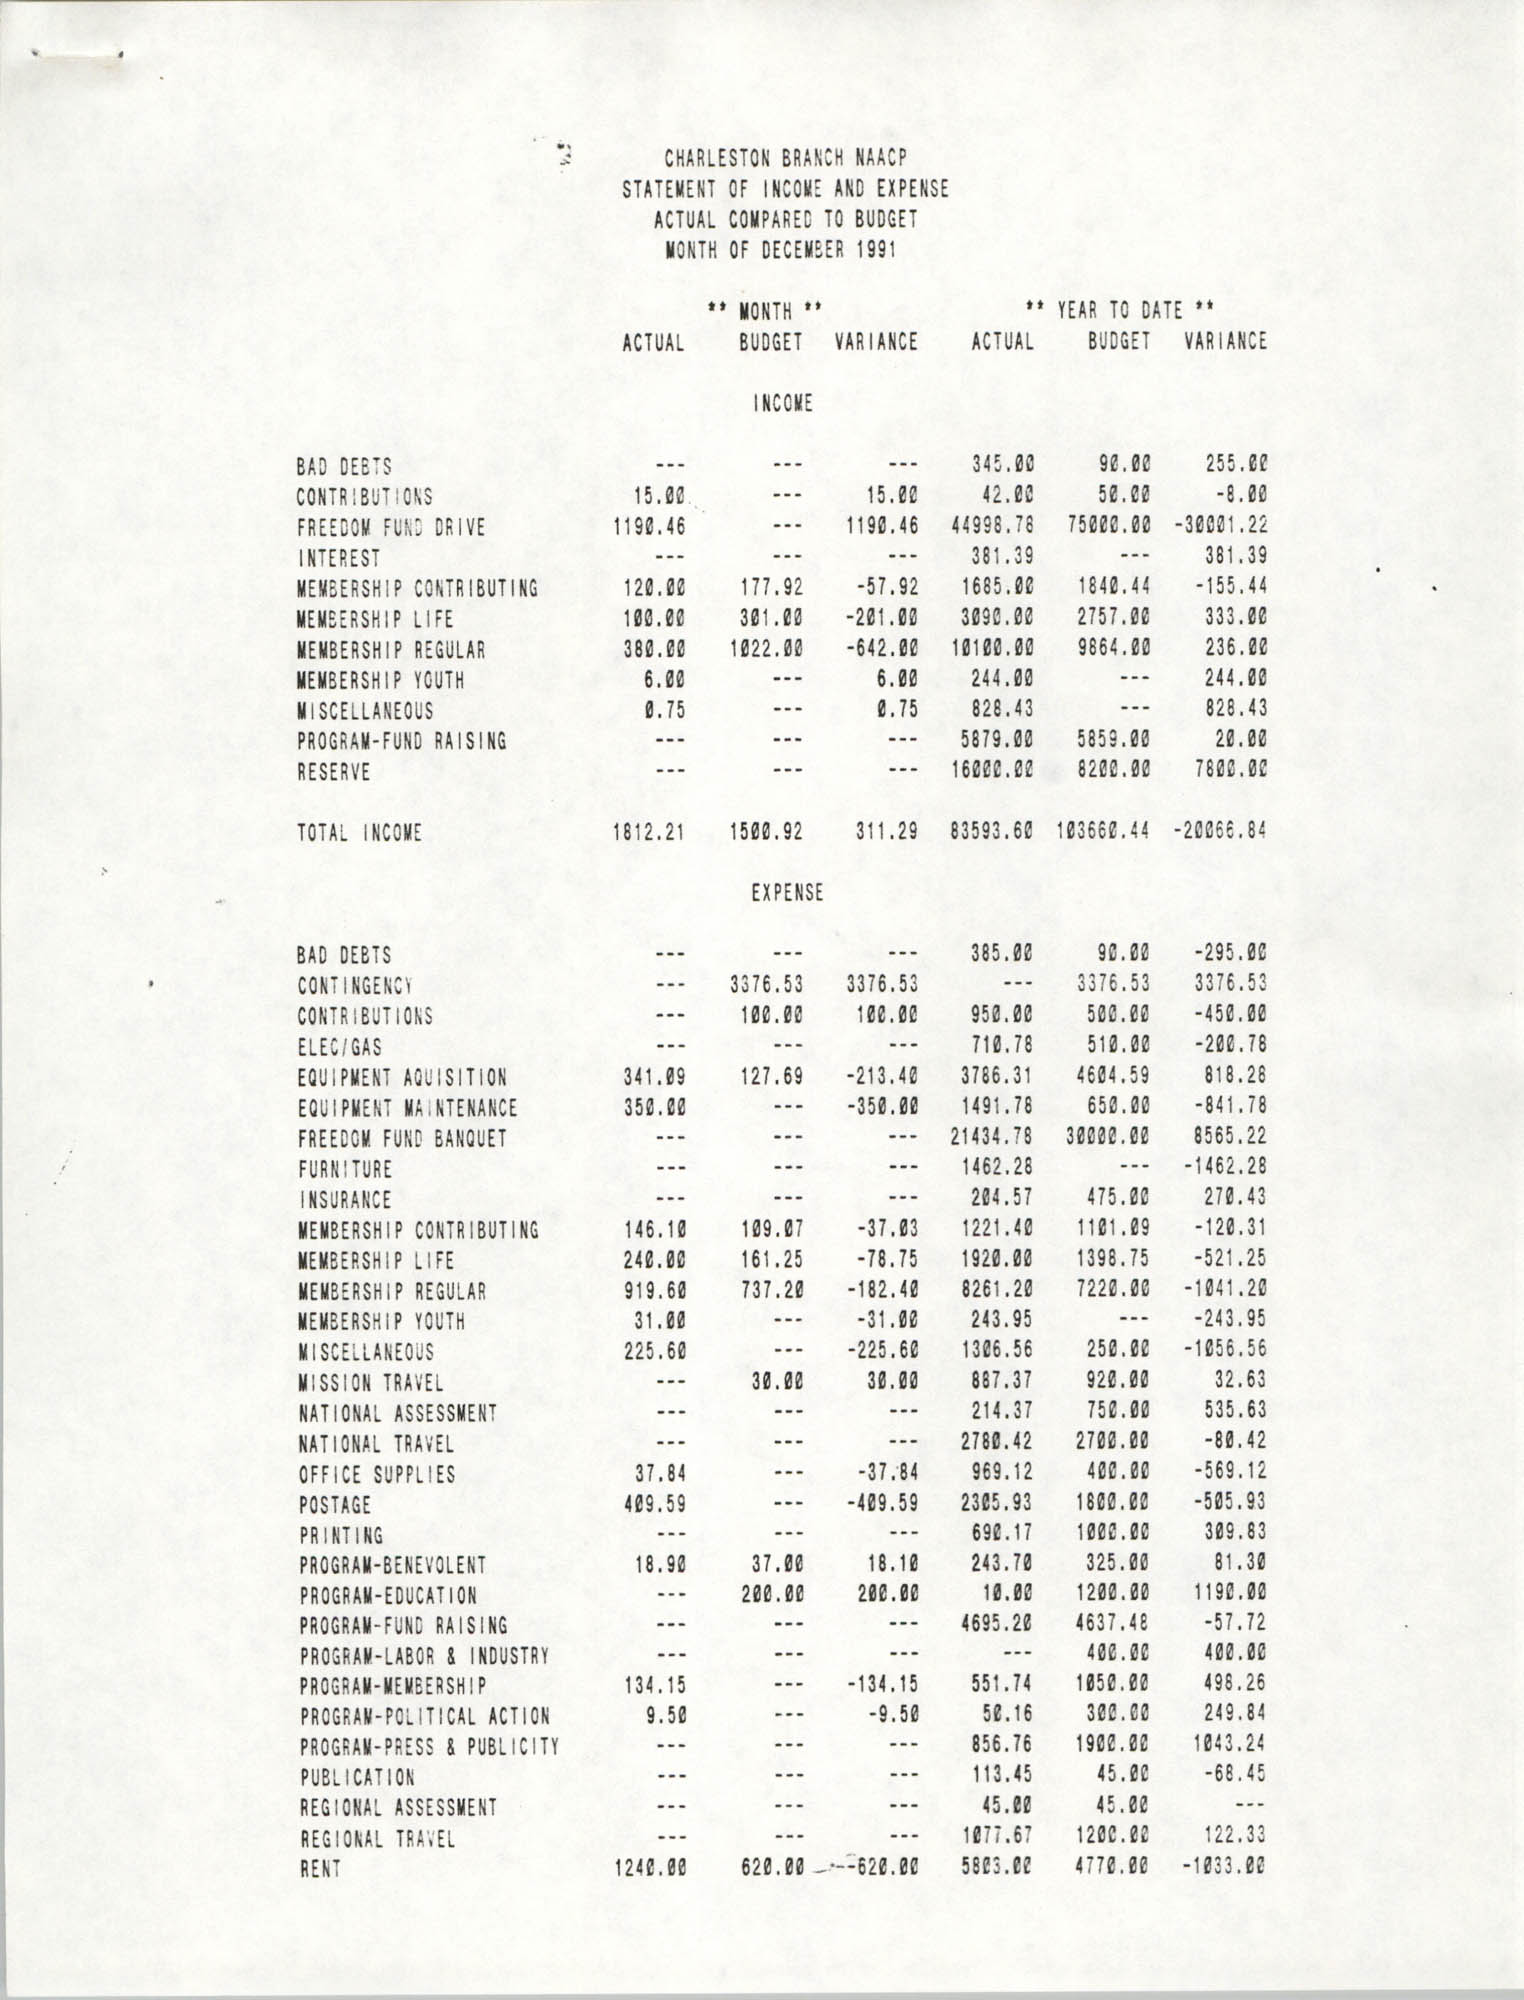 Charleston Branch of the NAACP Statement of Income and Expense, December 1991, Page 1